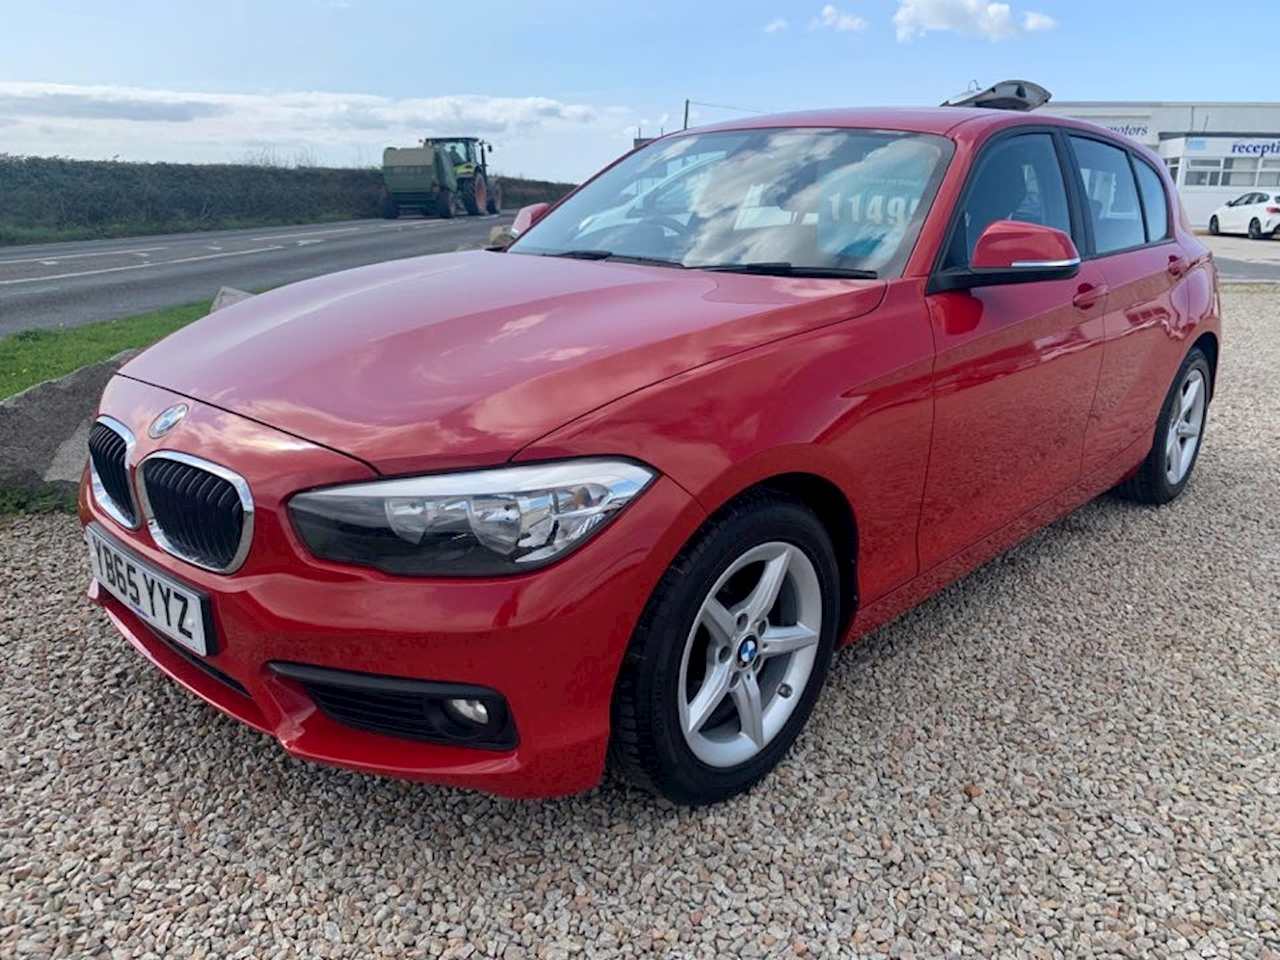 BMW 1 Series 116d ED Plus 5-Door 5 Door Sports Hatch 1.5 Manual Diesel